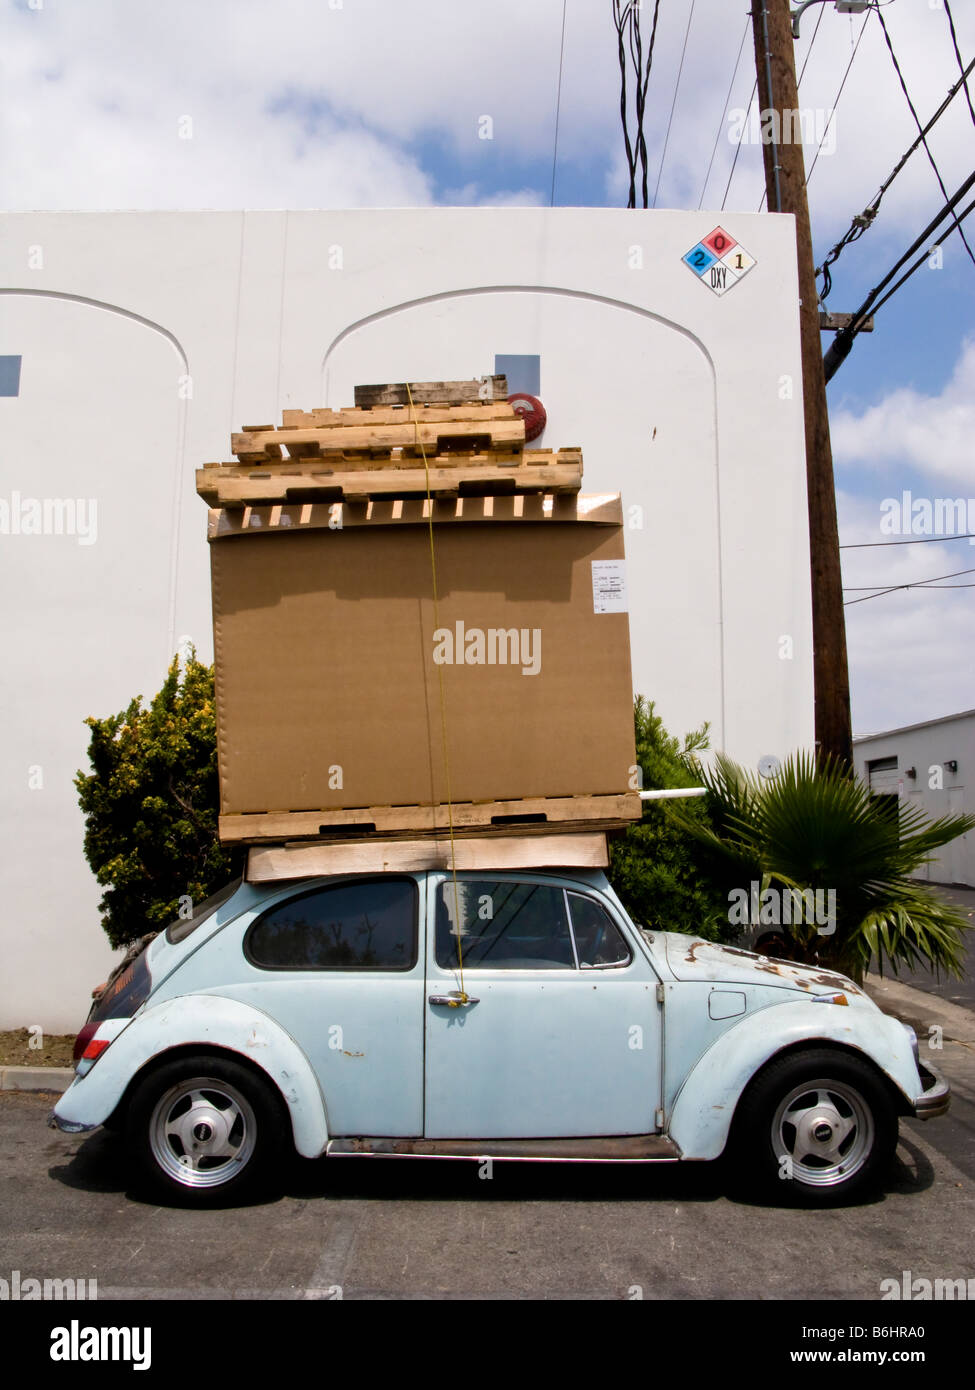 Cardboard boxes on top of roof of a VW beetle car - Stock Image